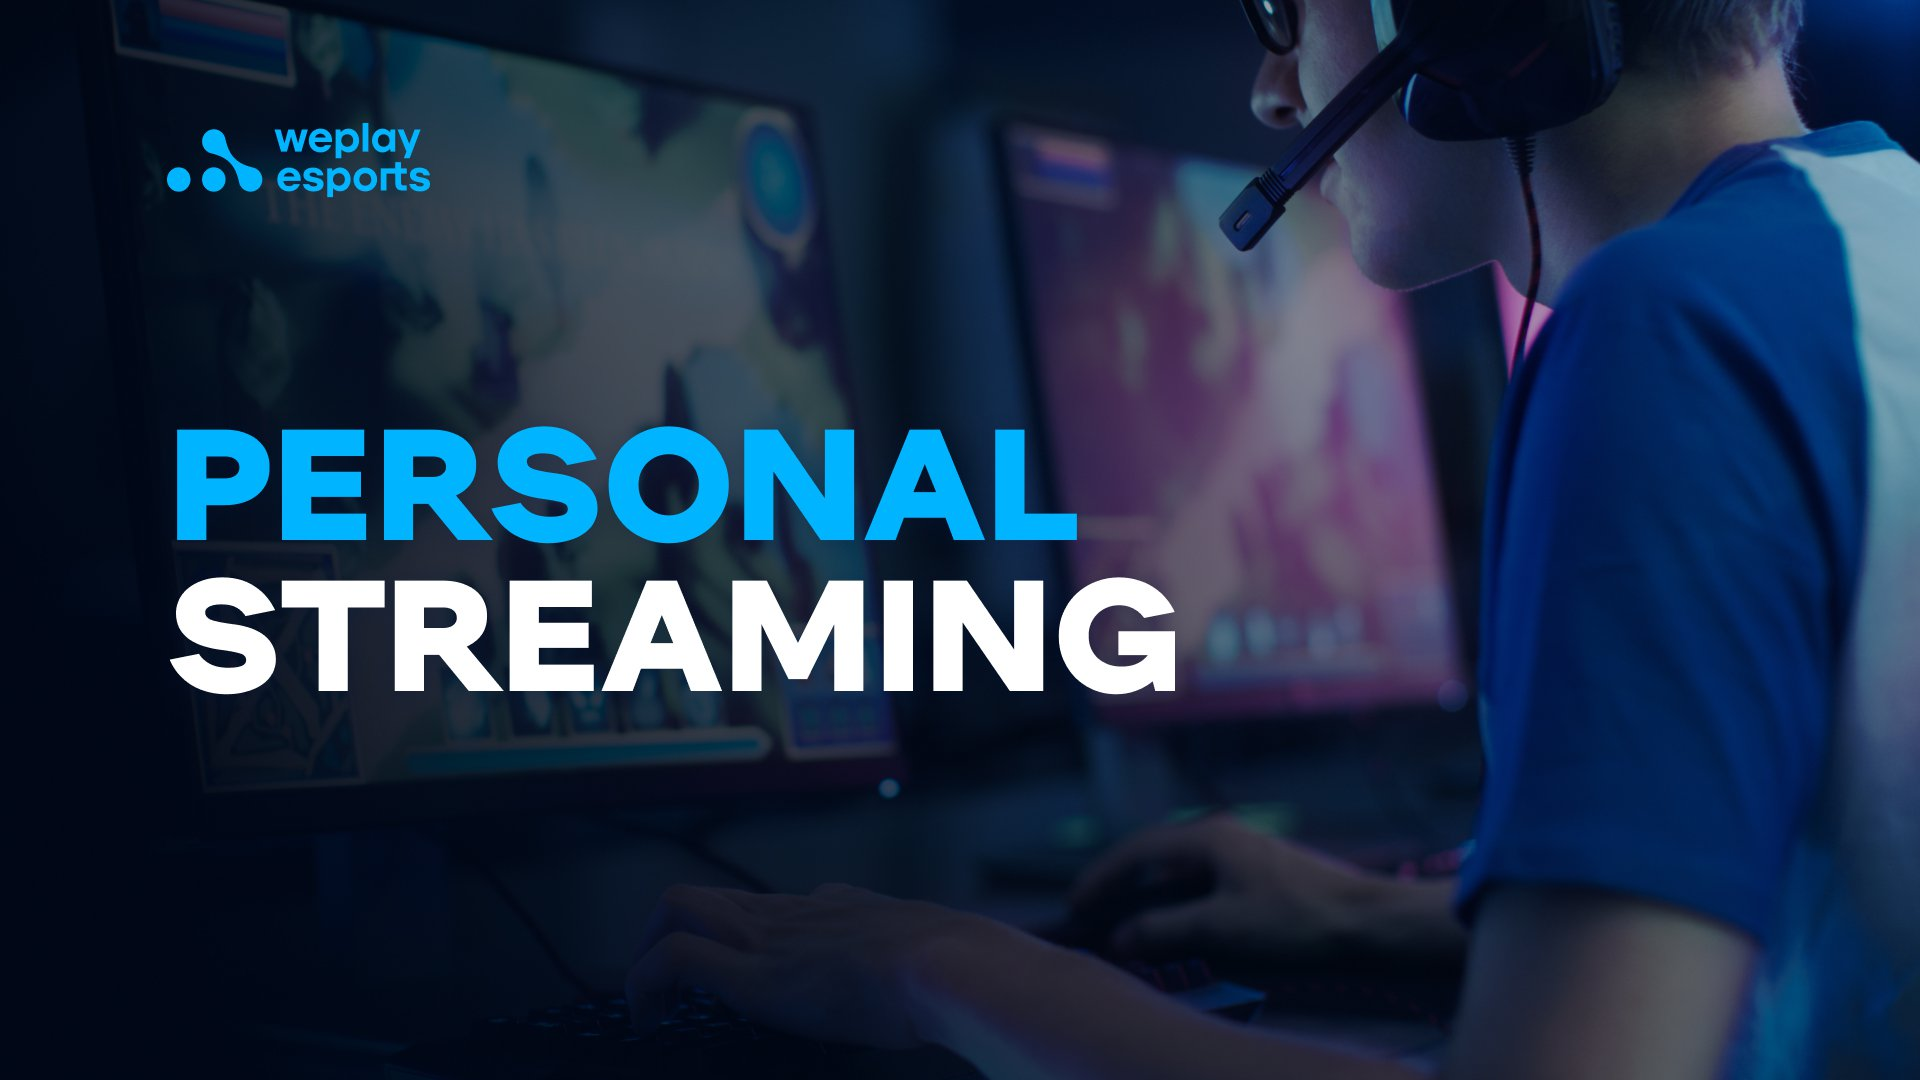 Personal Streaming